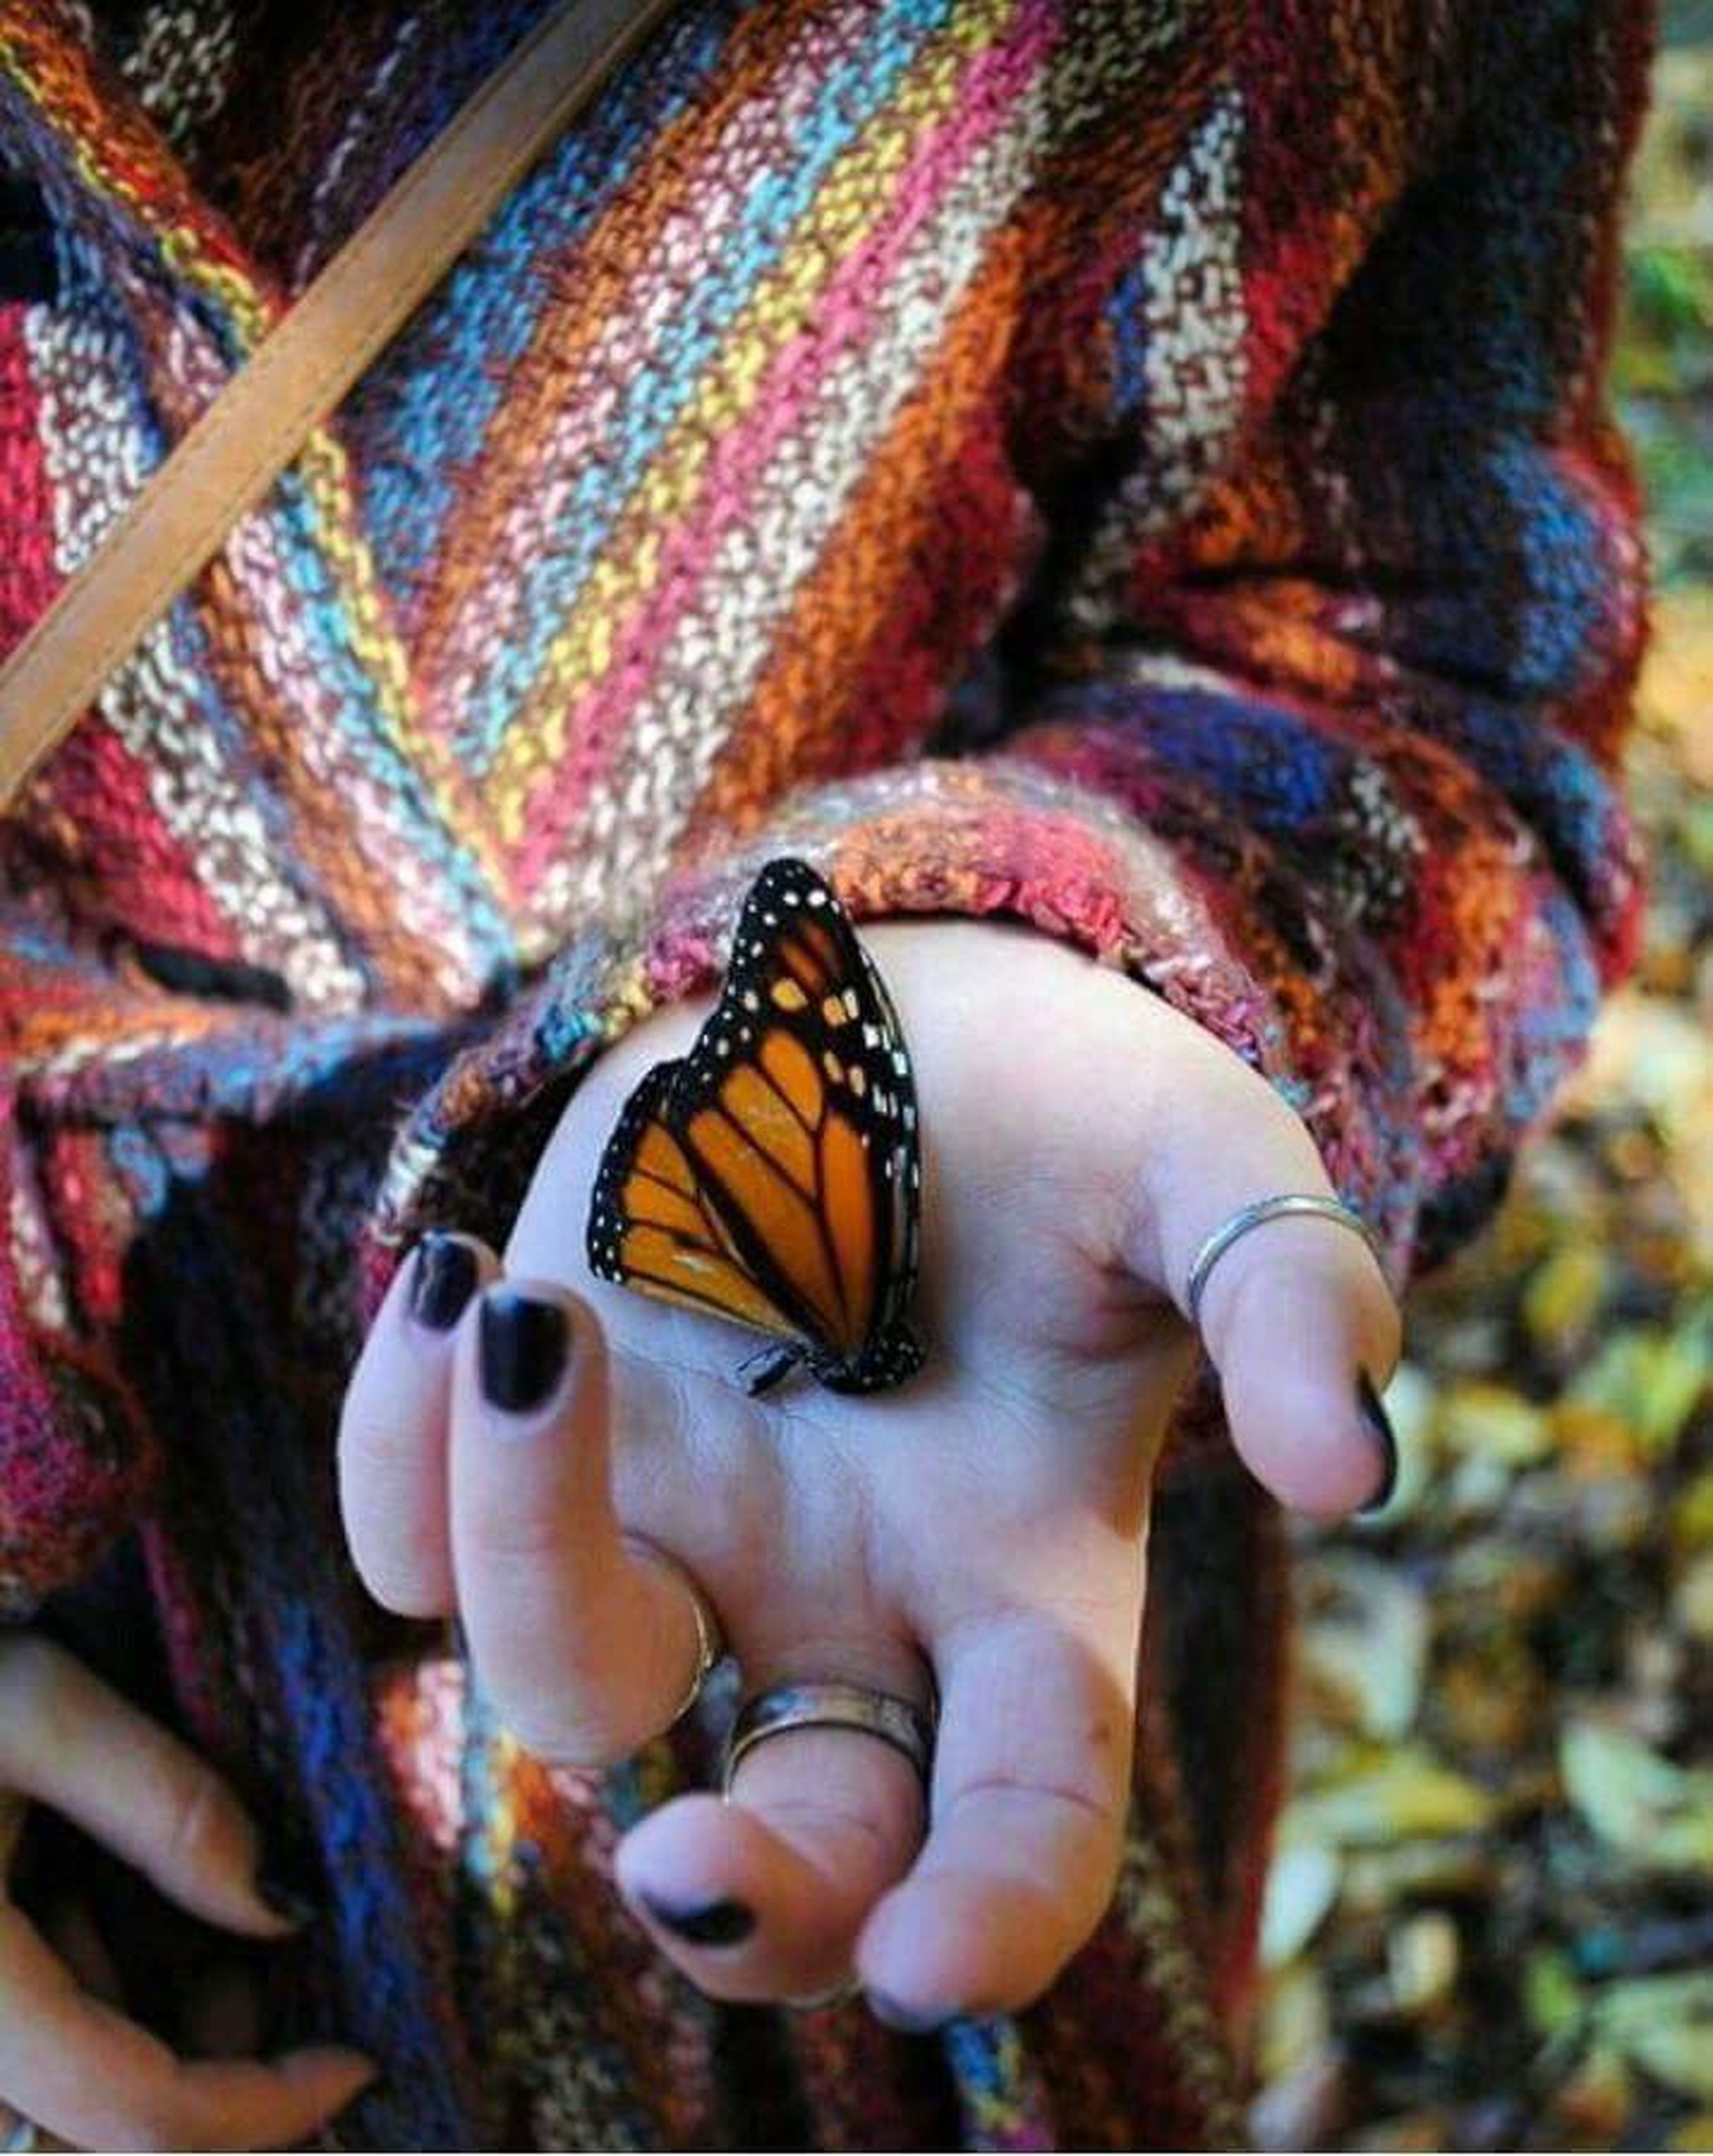 one animal, animal themes, insect, butterfly - insect, multi colored, nature, close-up, animal wildlife, animals in the wild, human hand, day, beauty in nature, outdoors, mammal, people